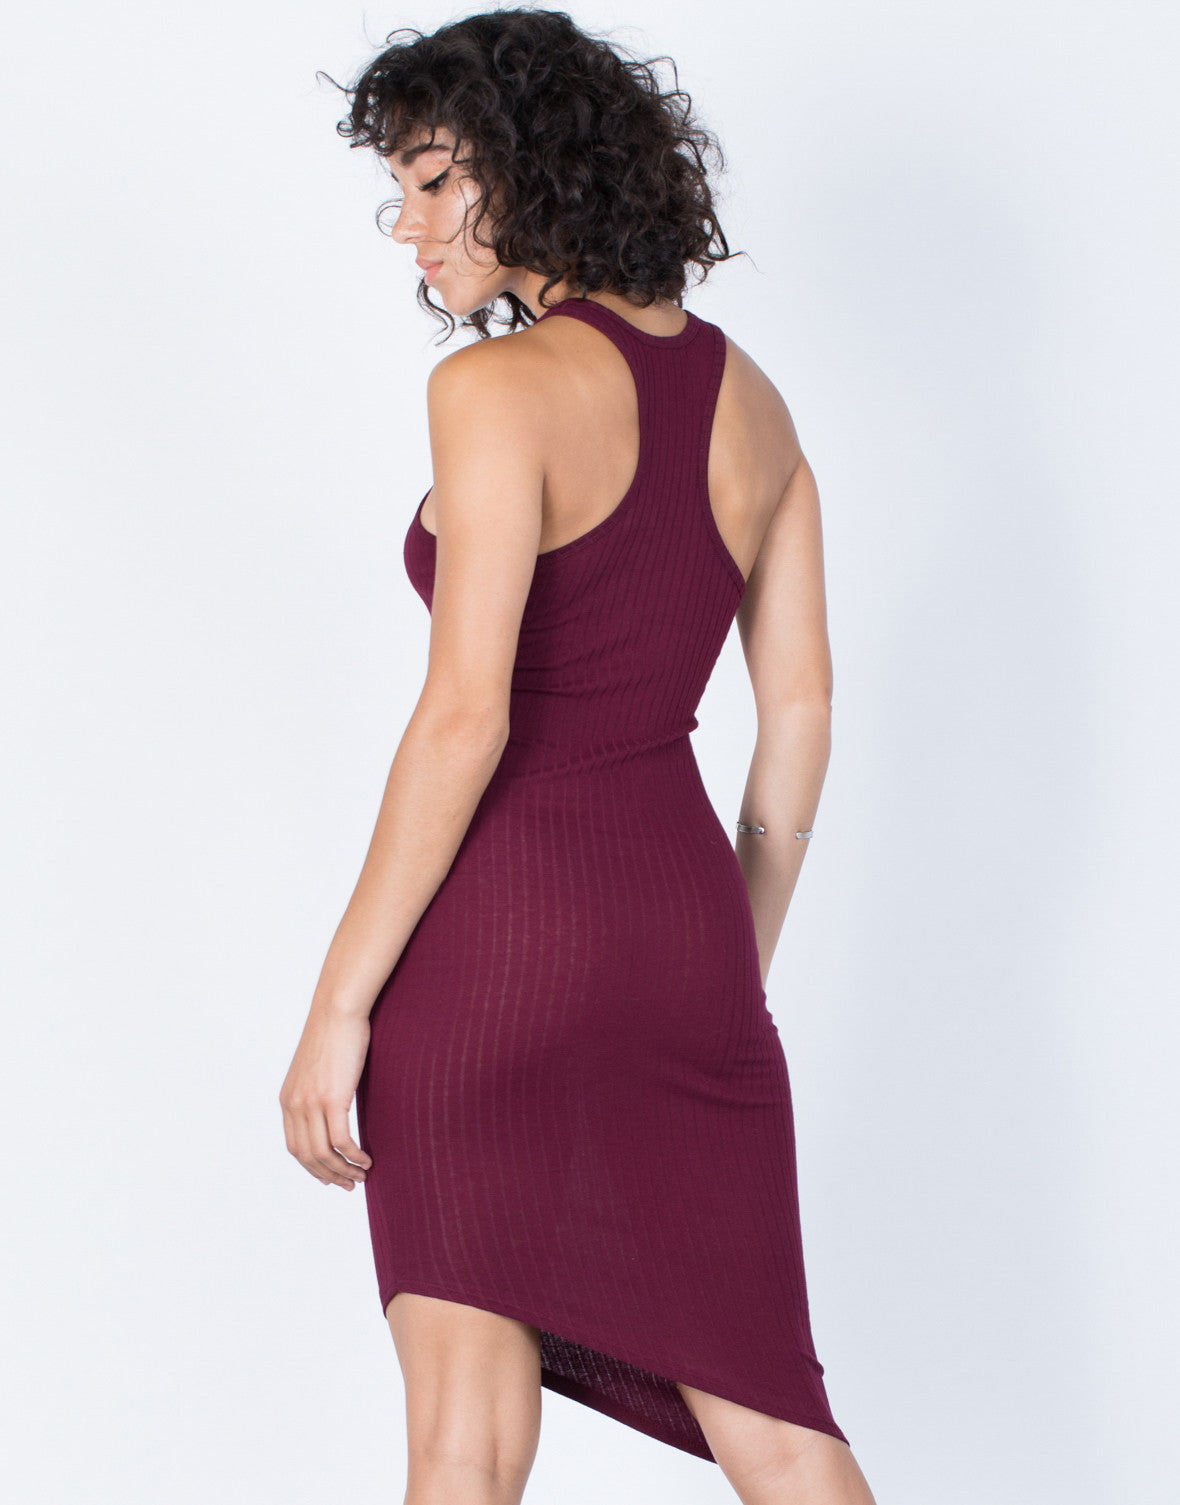 Merlot Jodie Asymmetrical Dress - Back View